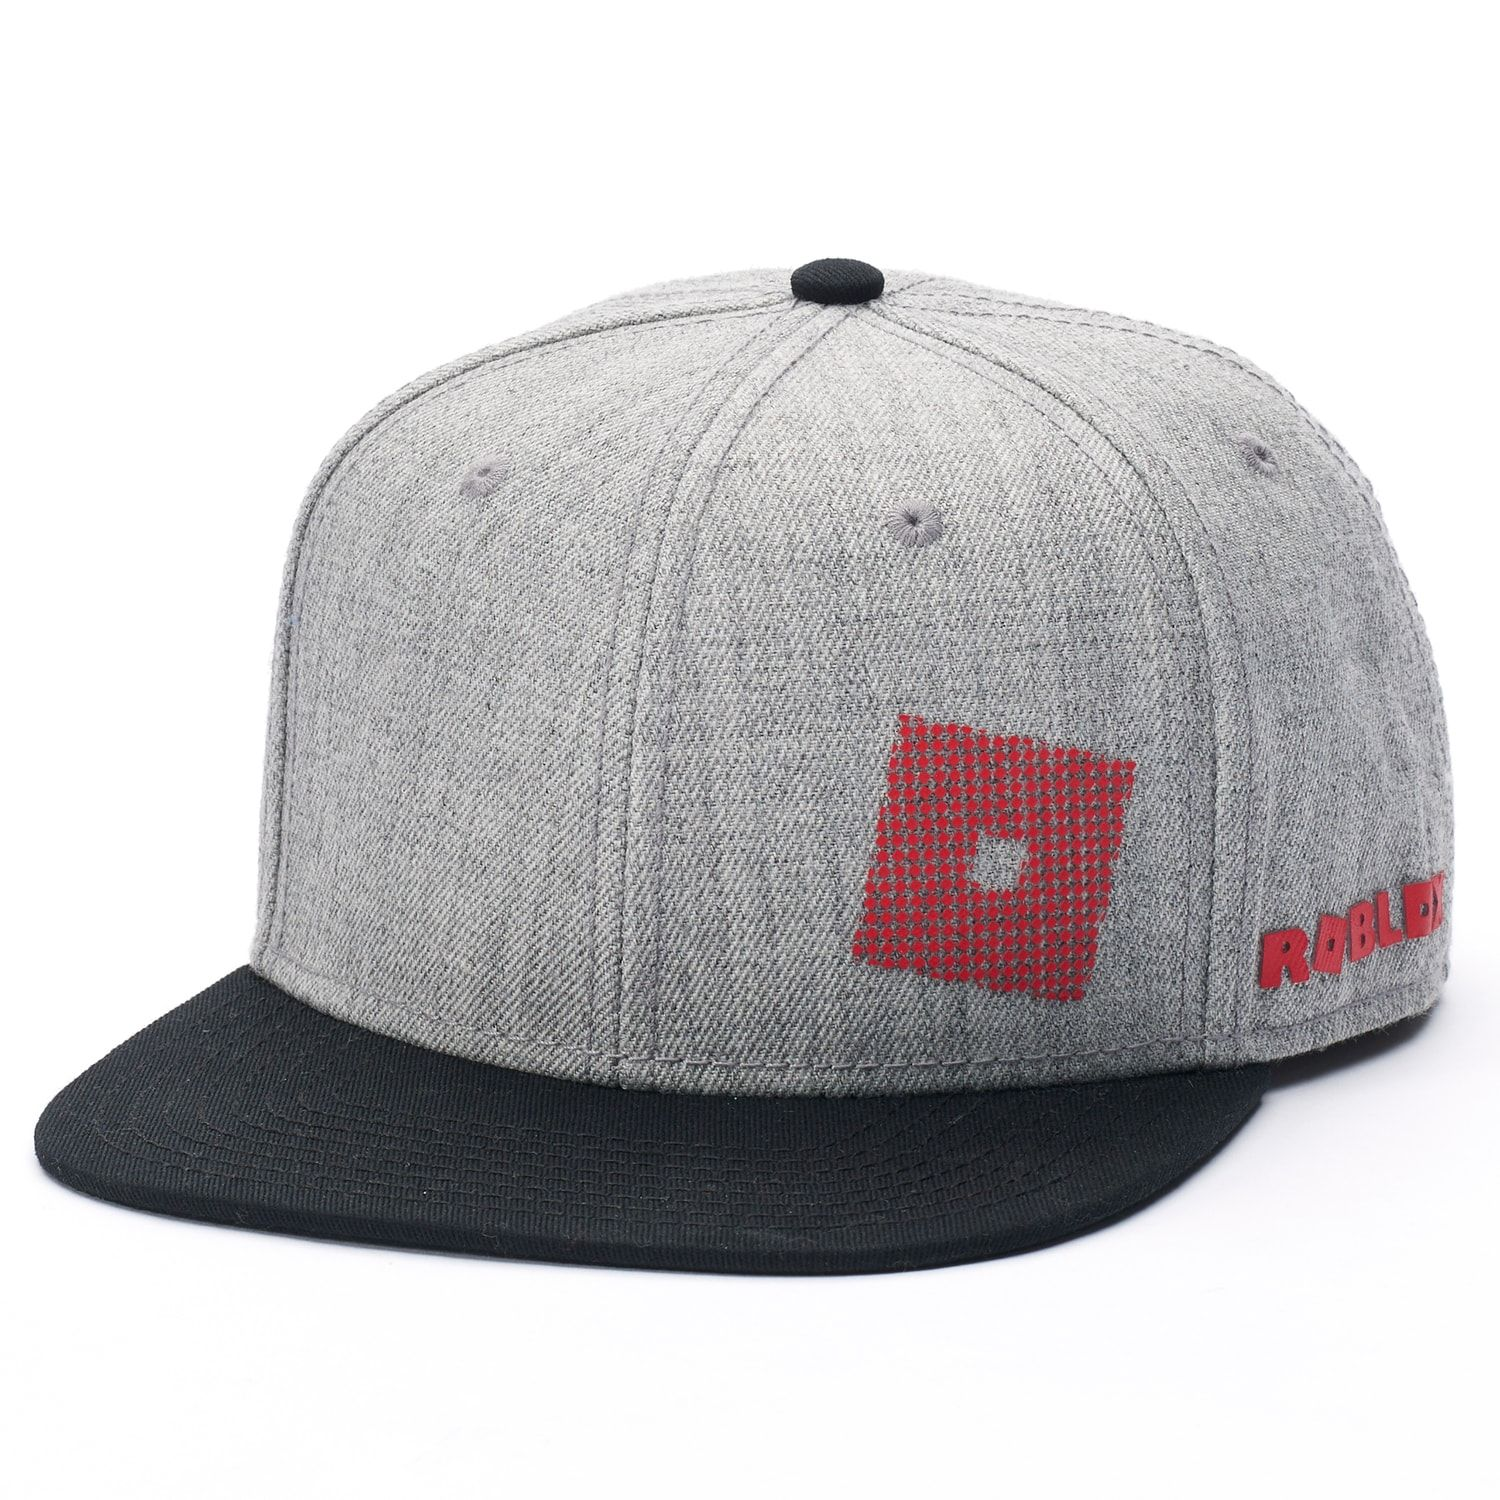 Boys 4 20 Roblox Heathered Cap Boys Roblox Cap Heathered Boys Cap Roblox